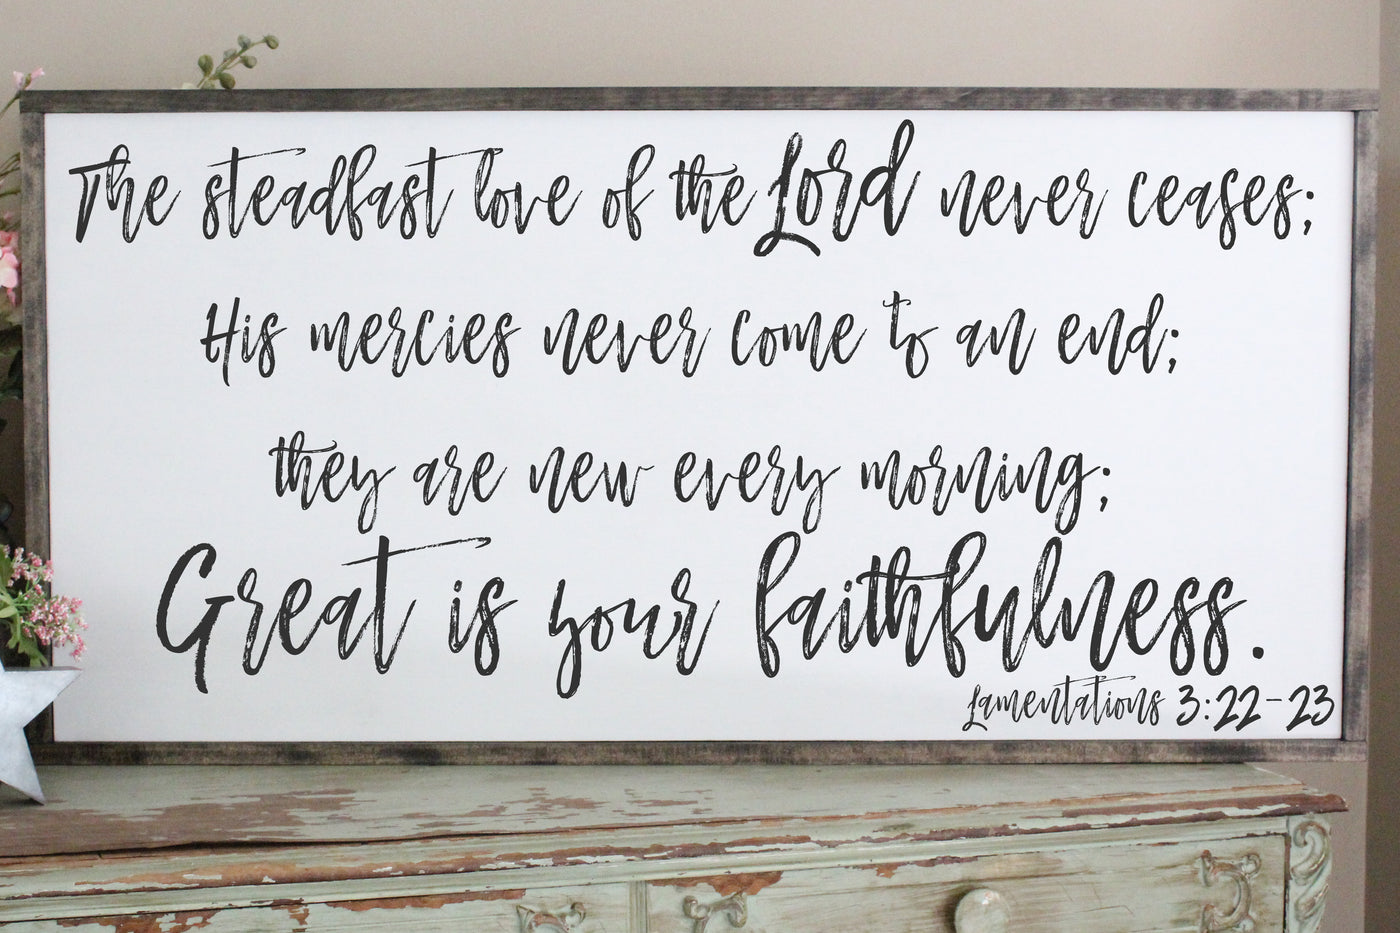 Great Is Your Faithfulness, The Steadfast Love of the Lord 2'x4' Distressed Script Framed Sign